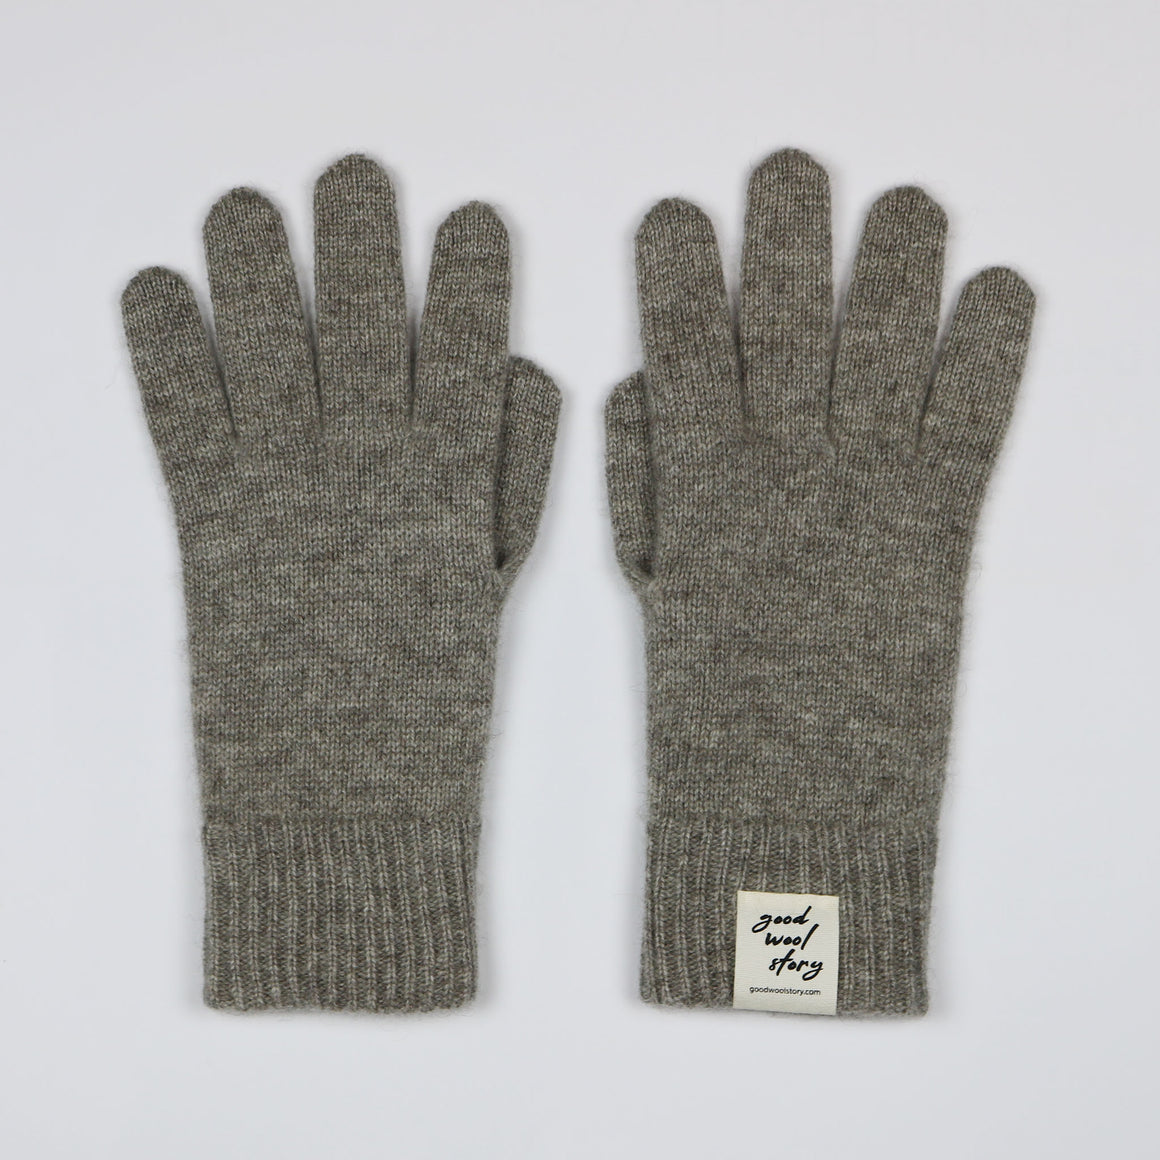 'Gentle' Men's Gloves